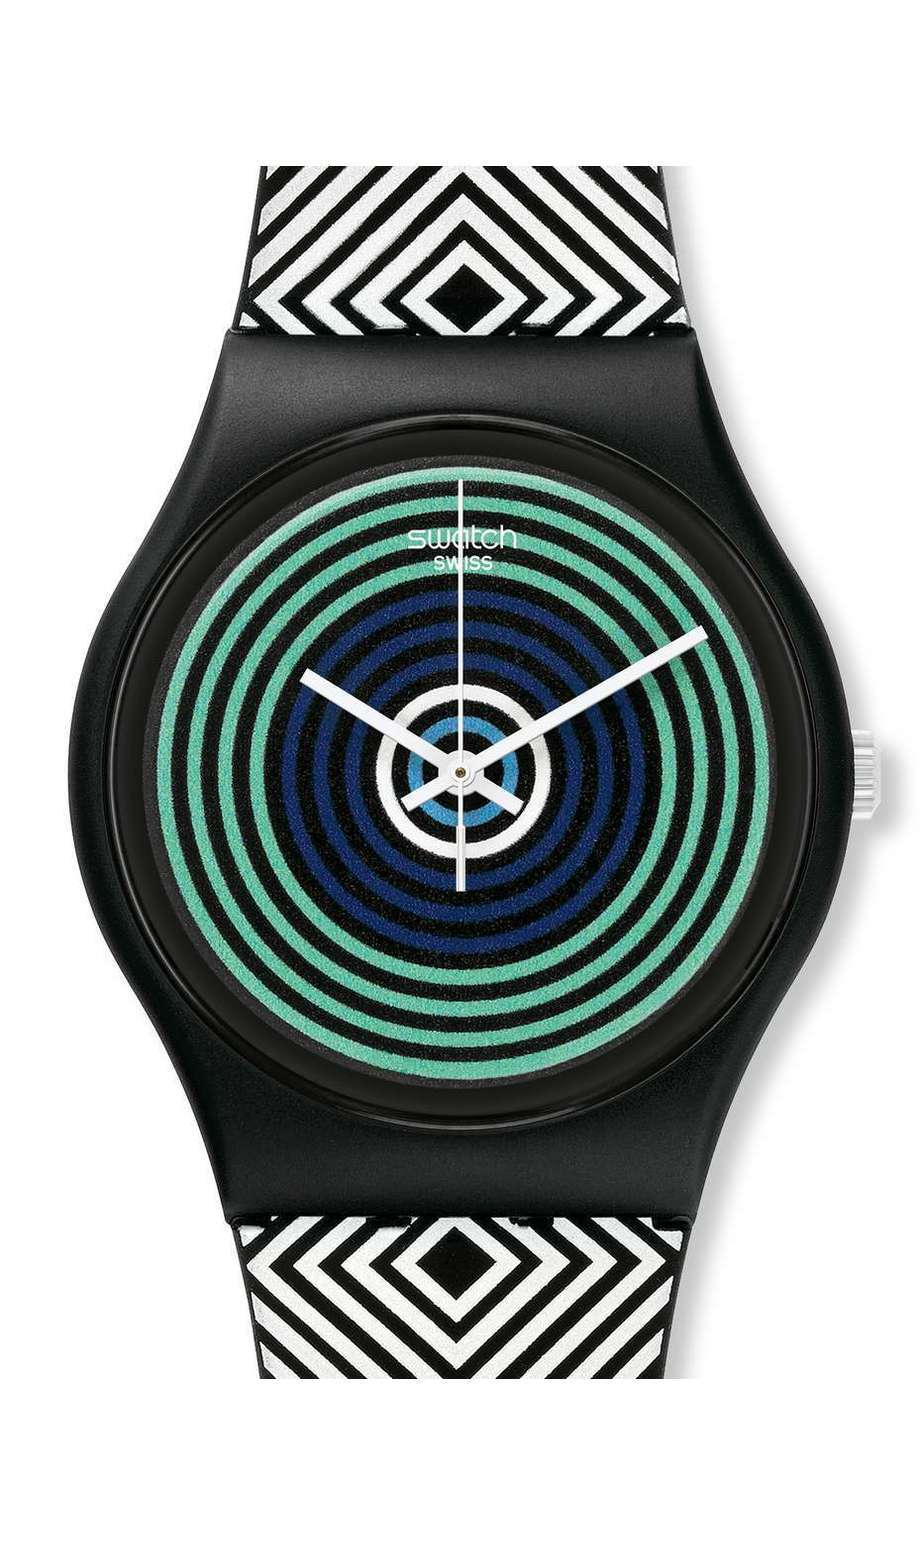 Swatch - MAXI GREEN SPELL - 1